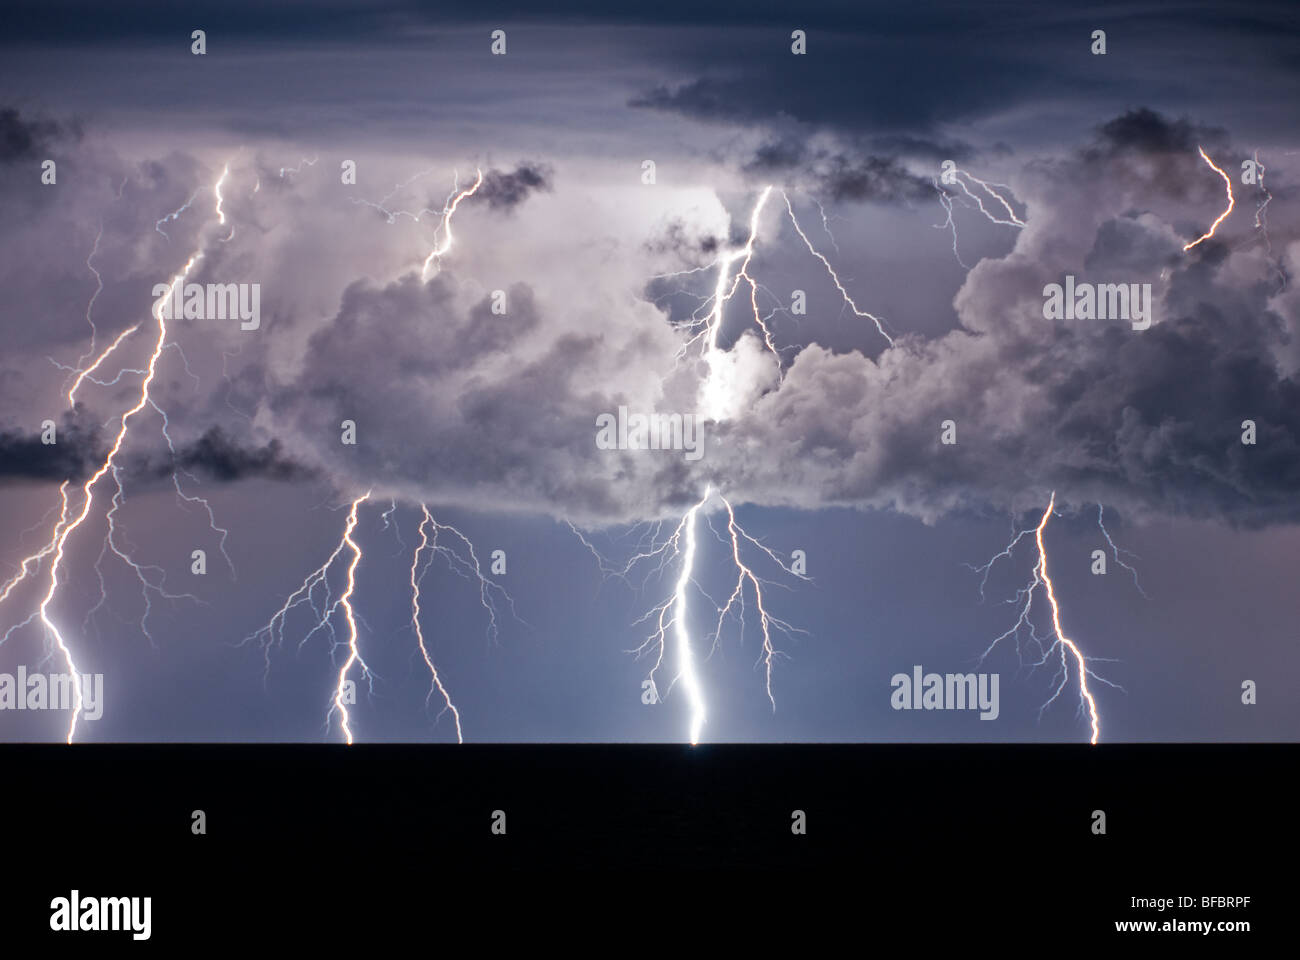 storm on the Mediterranean Sea in Italy - Stock Image